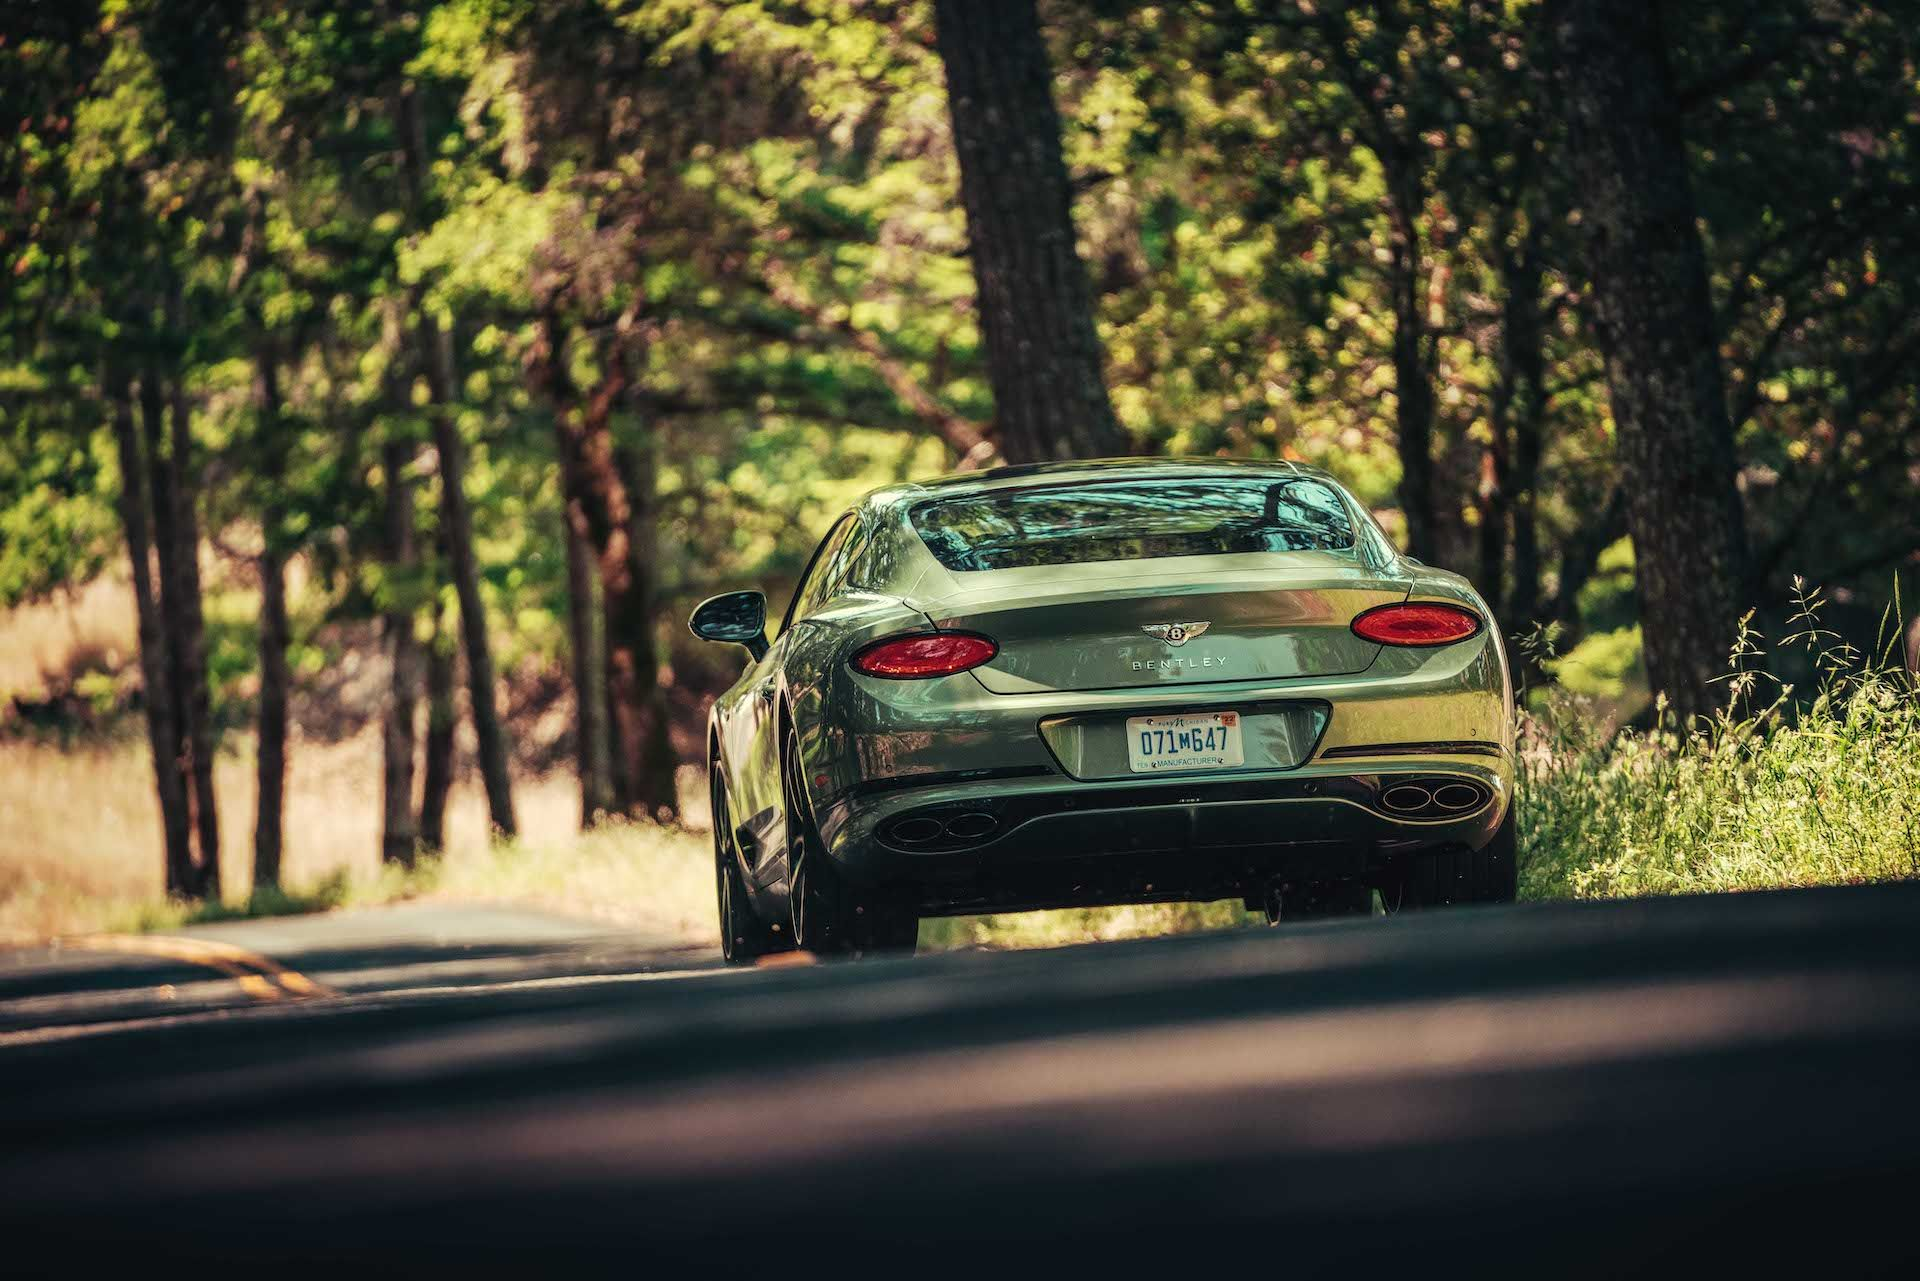 2020 Bentley Continental GT V8 Coupe Rear View